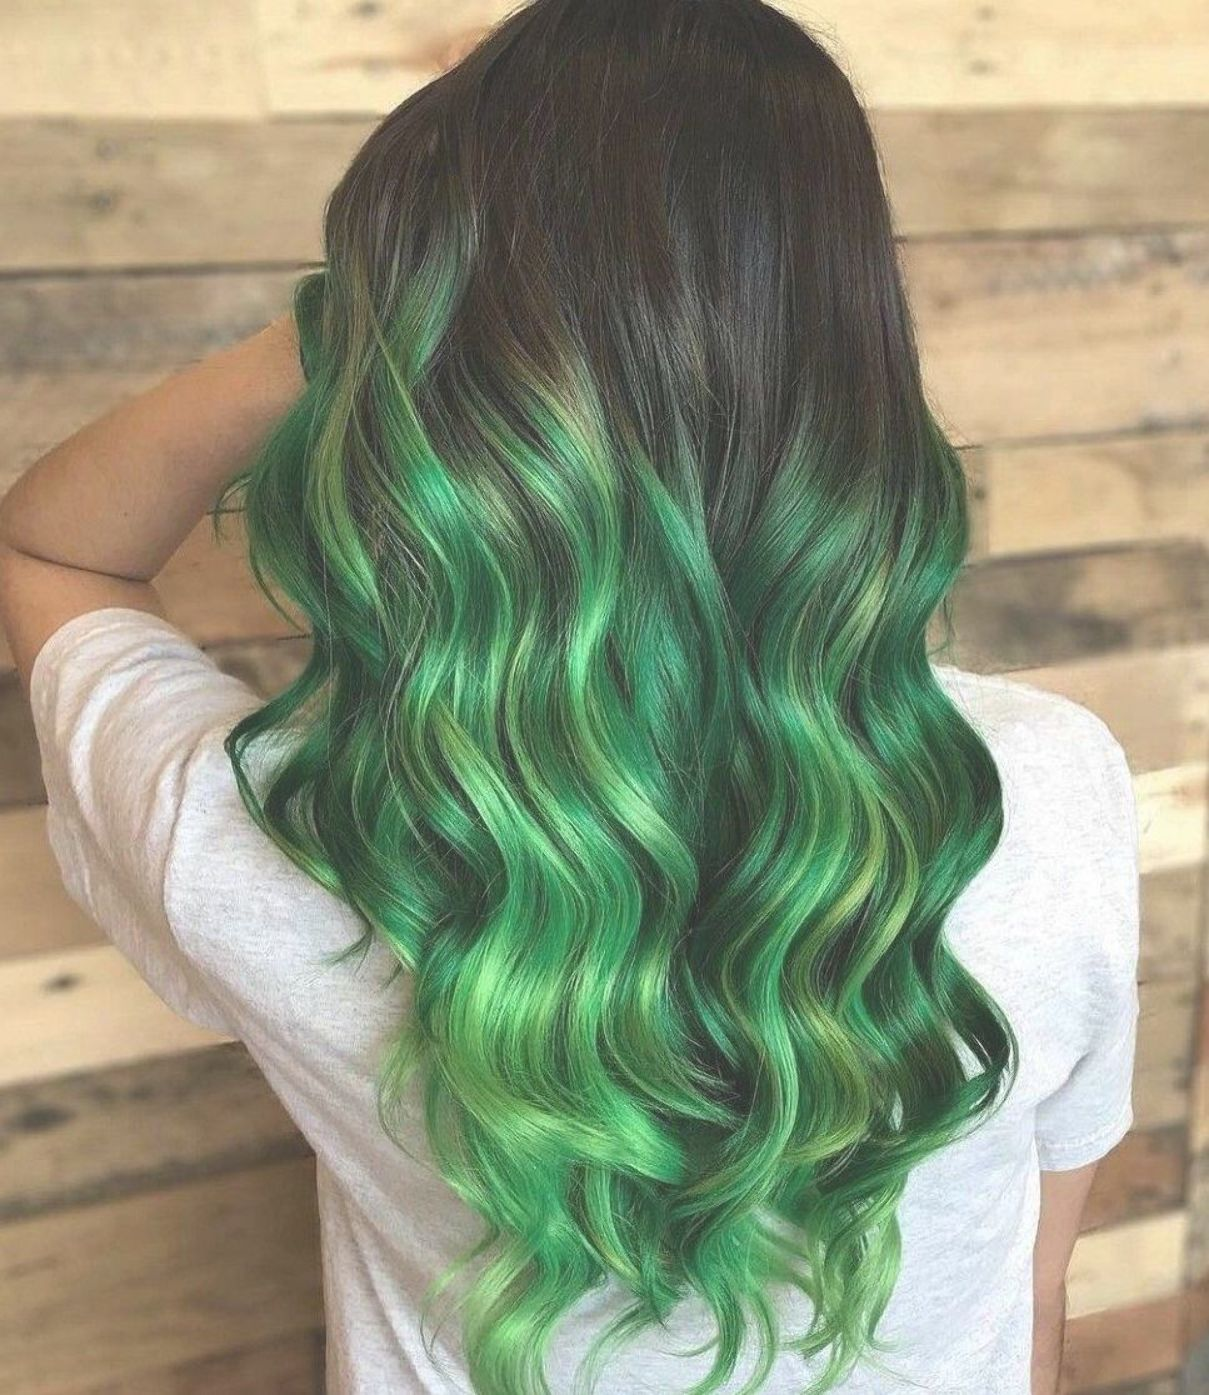 25 Lovely Hair Colors For Women Who Love Colorful Hair